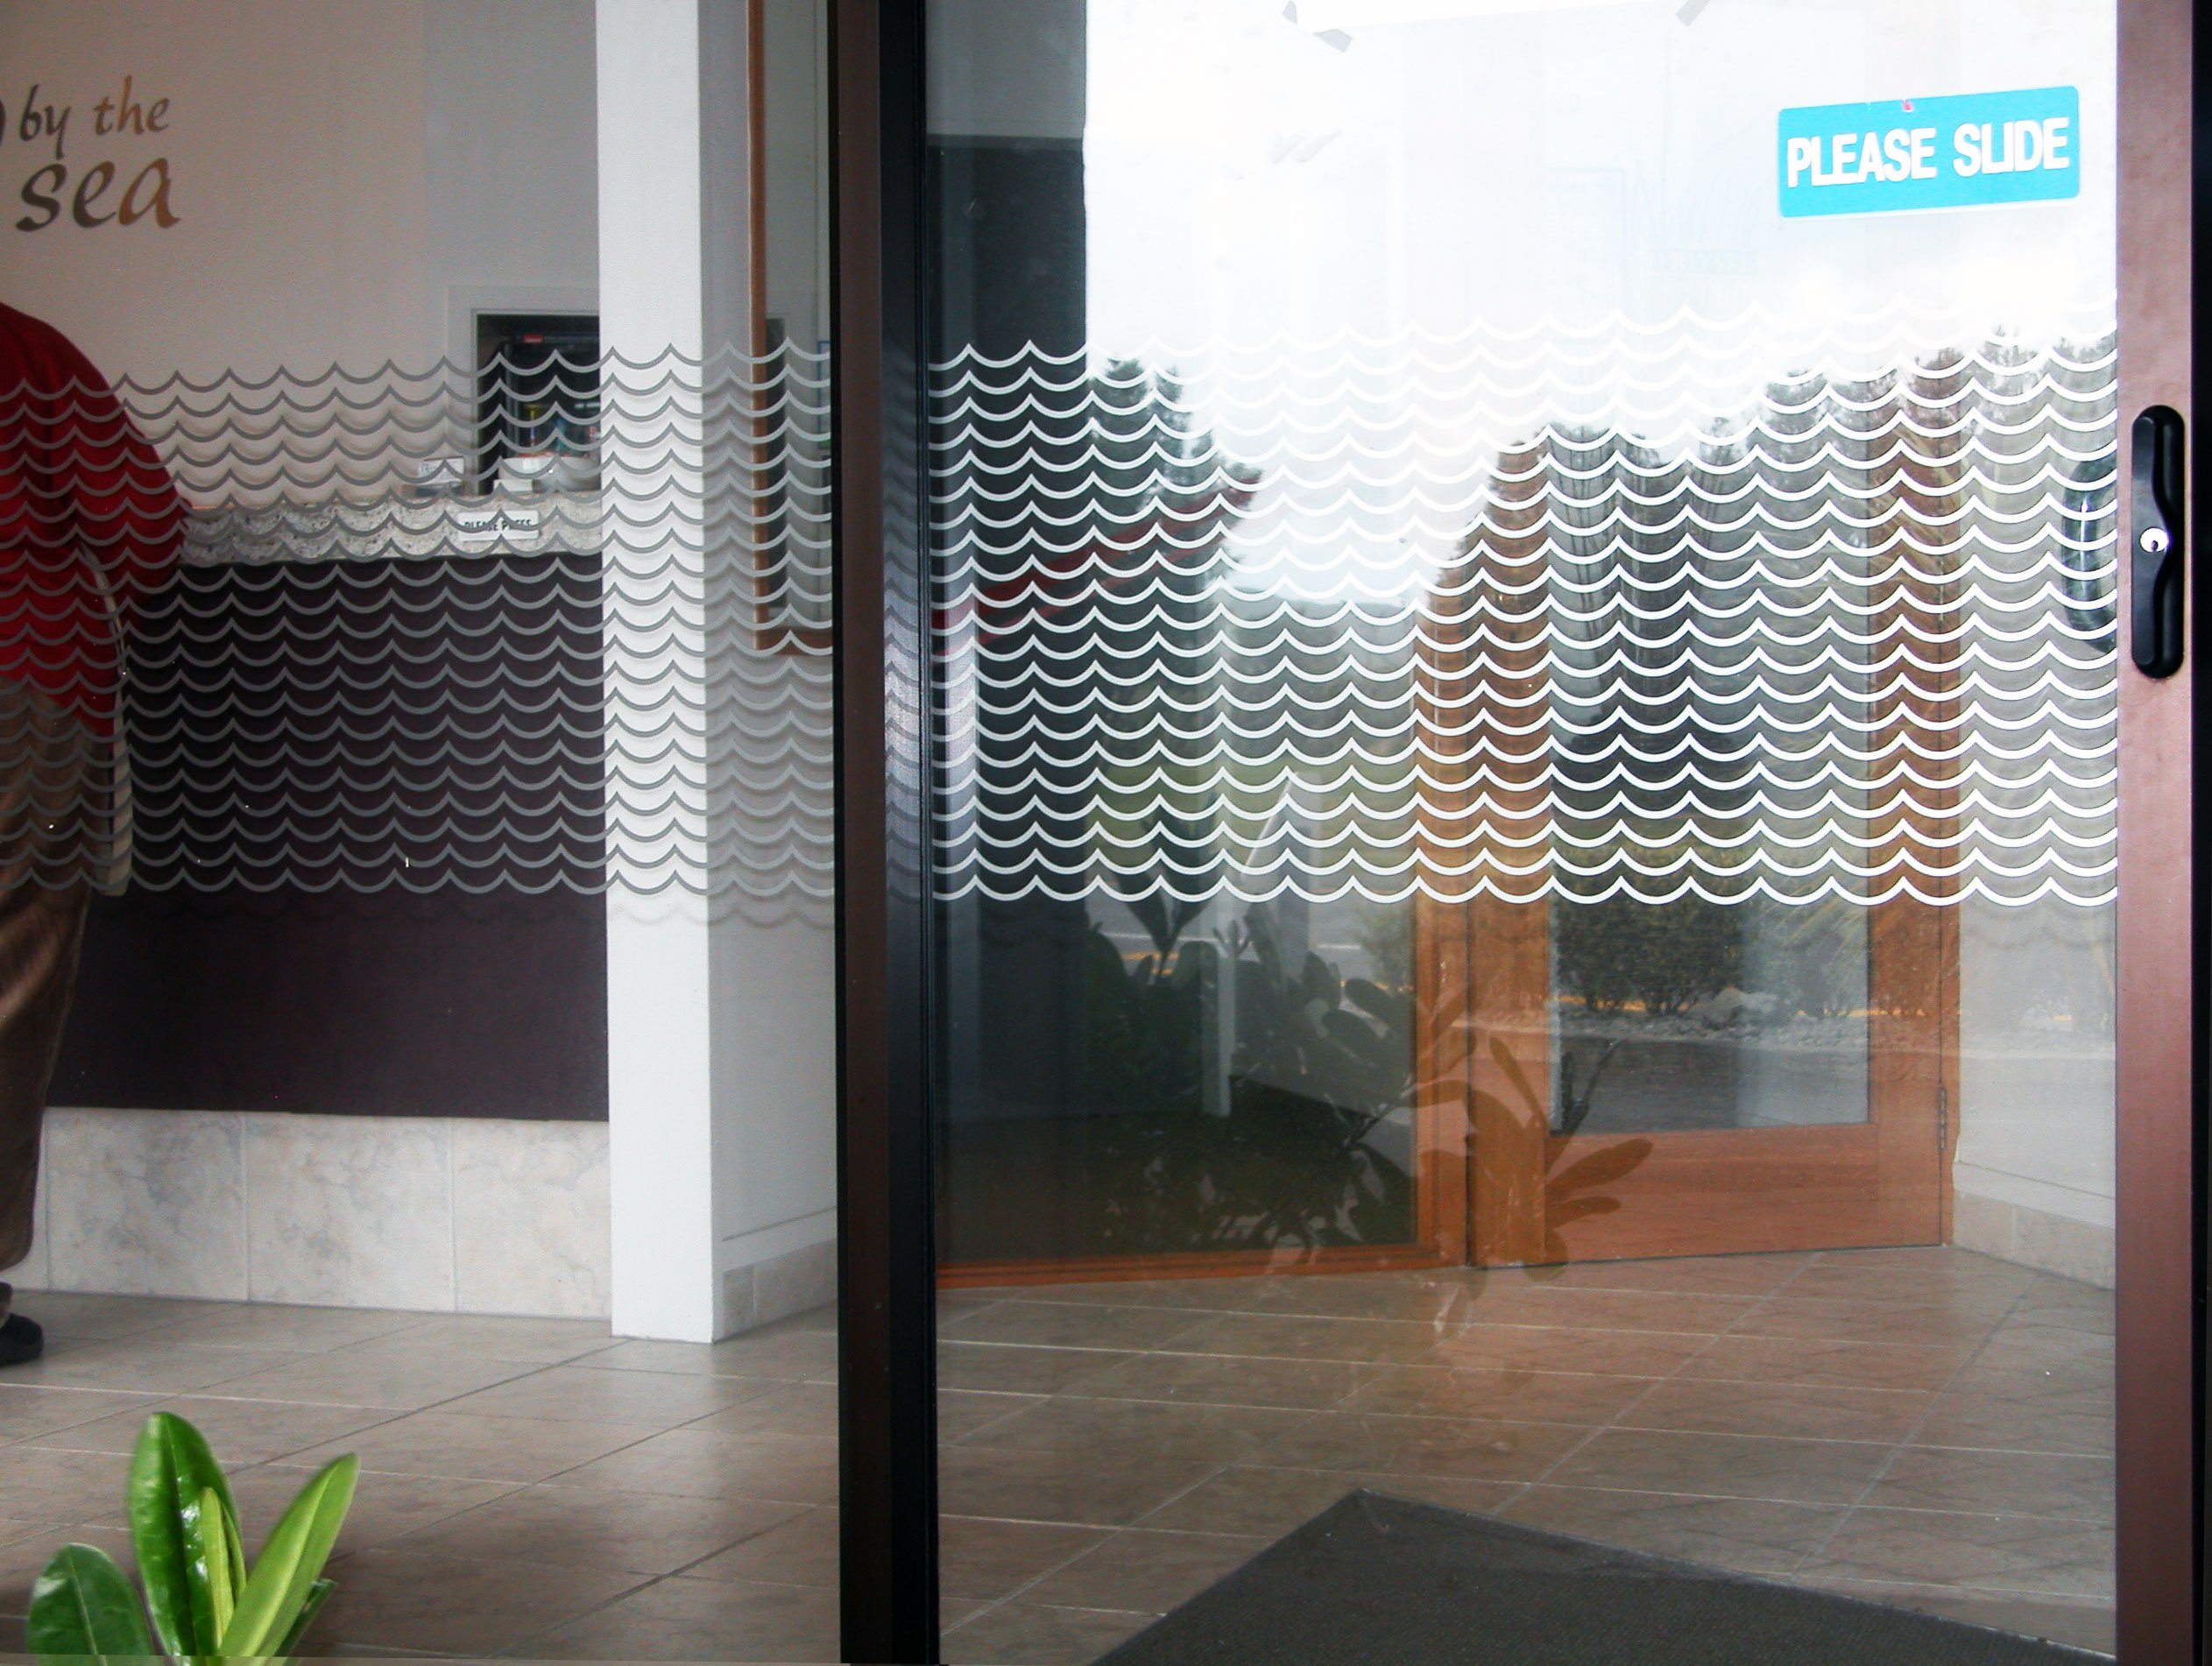 Window etch film with graphic design applied to windows